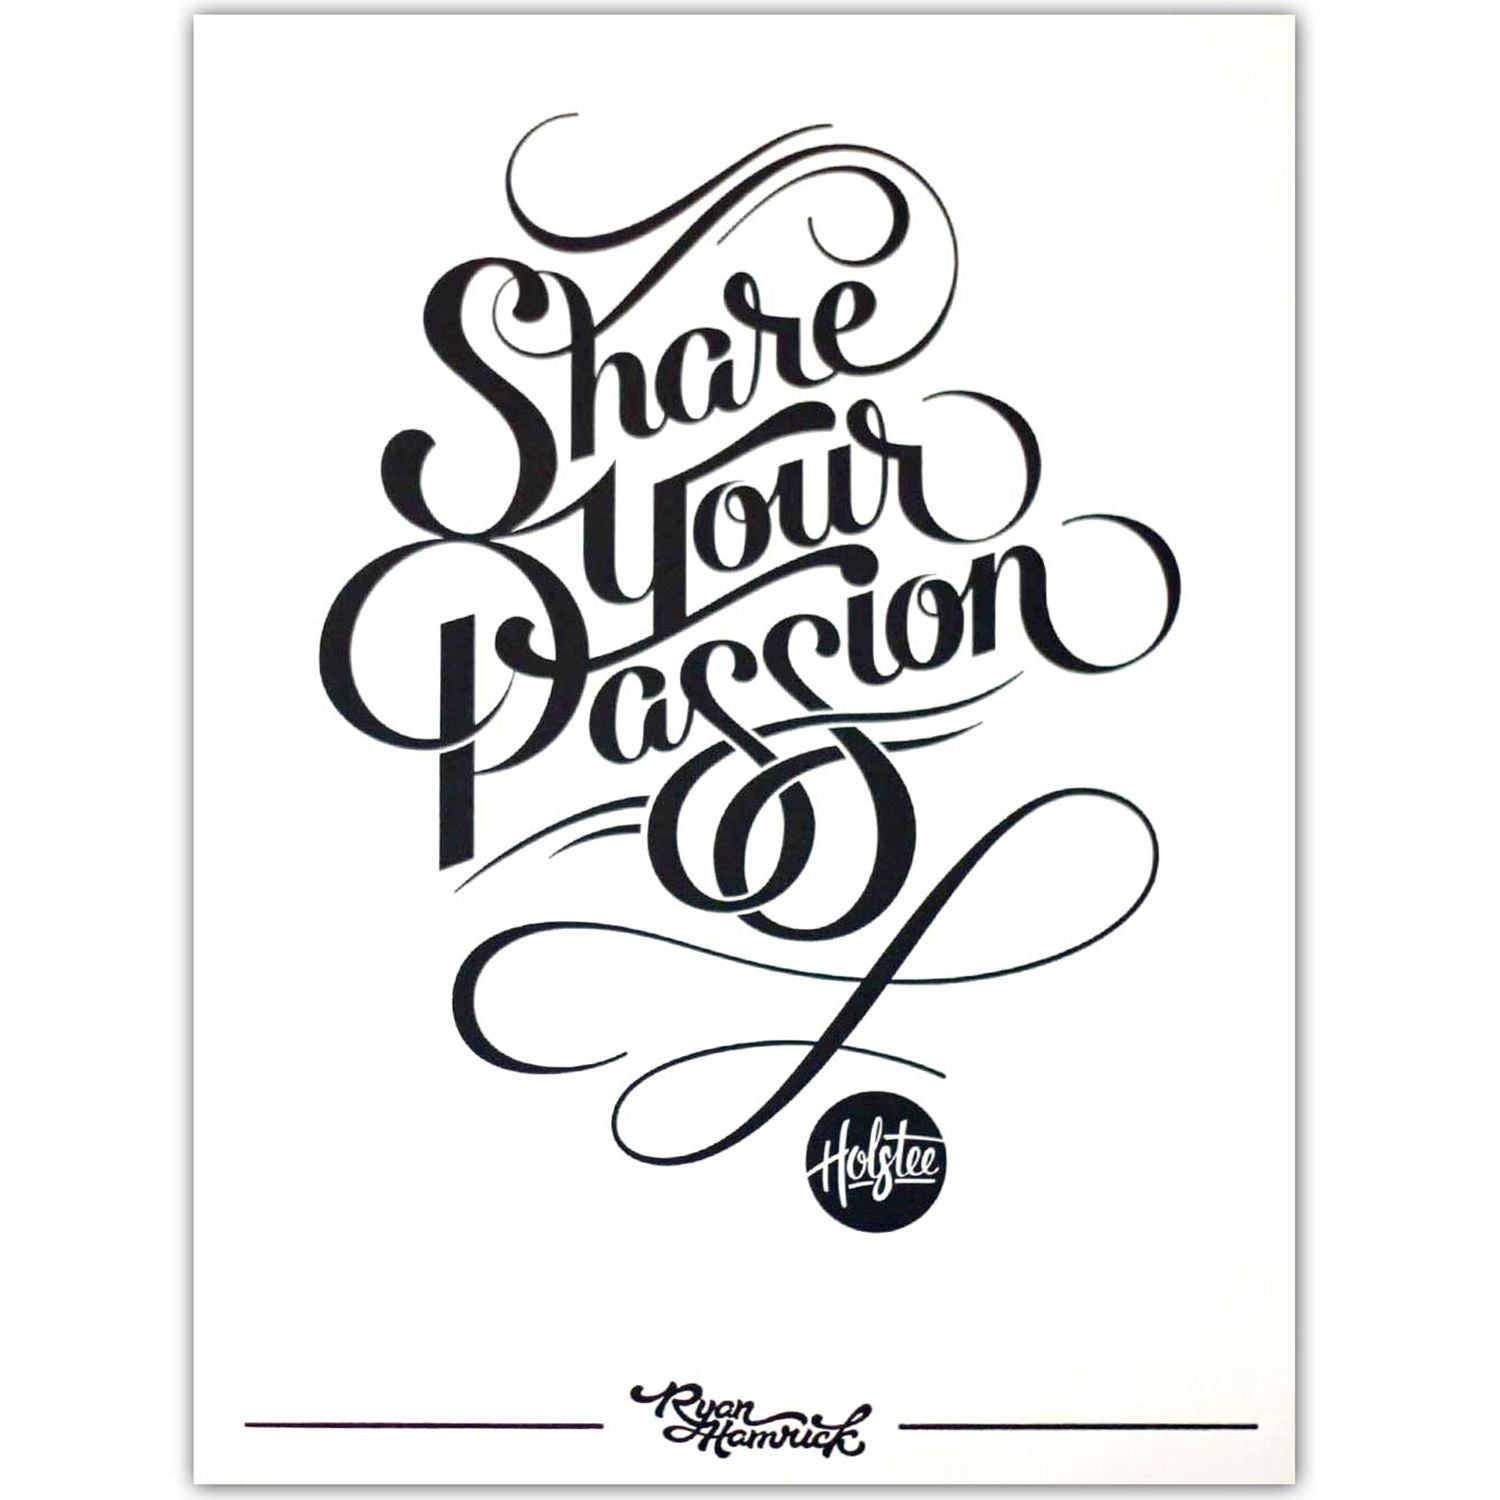 Share Your Passion Print - 12x16